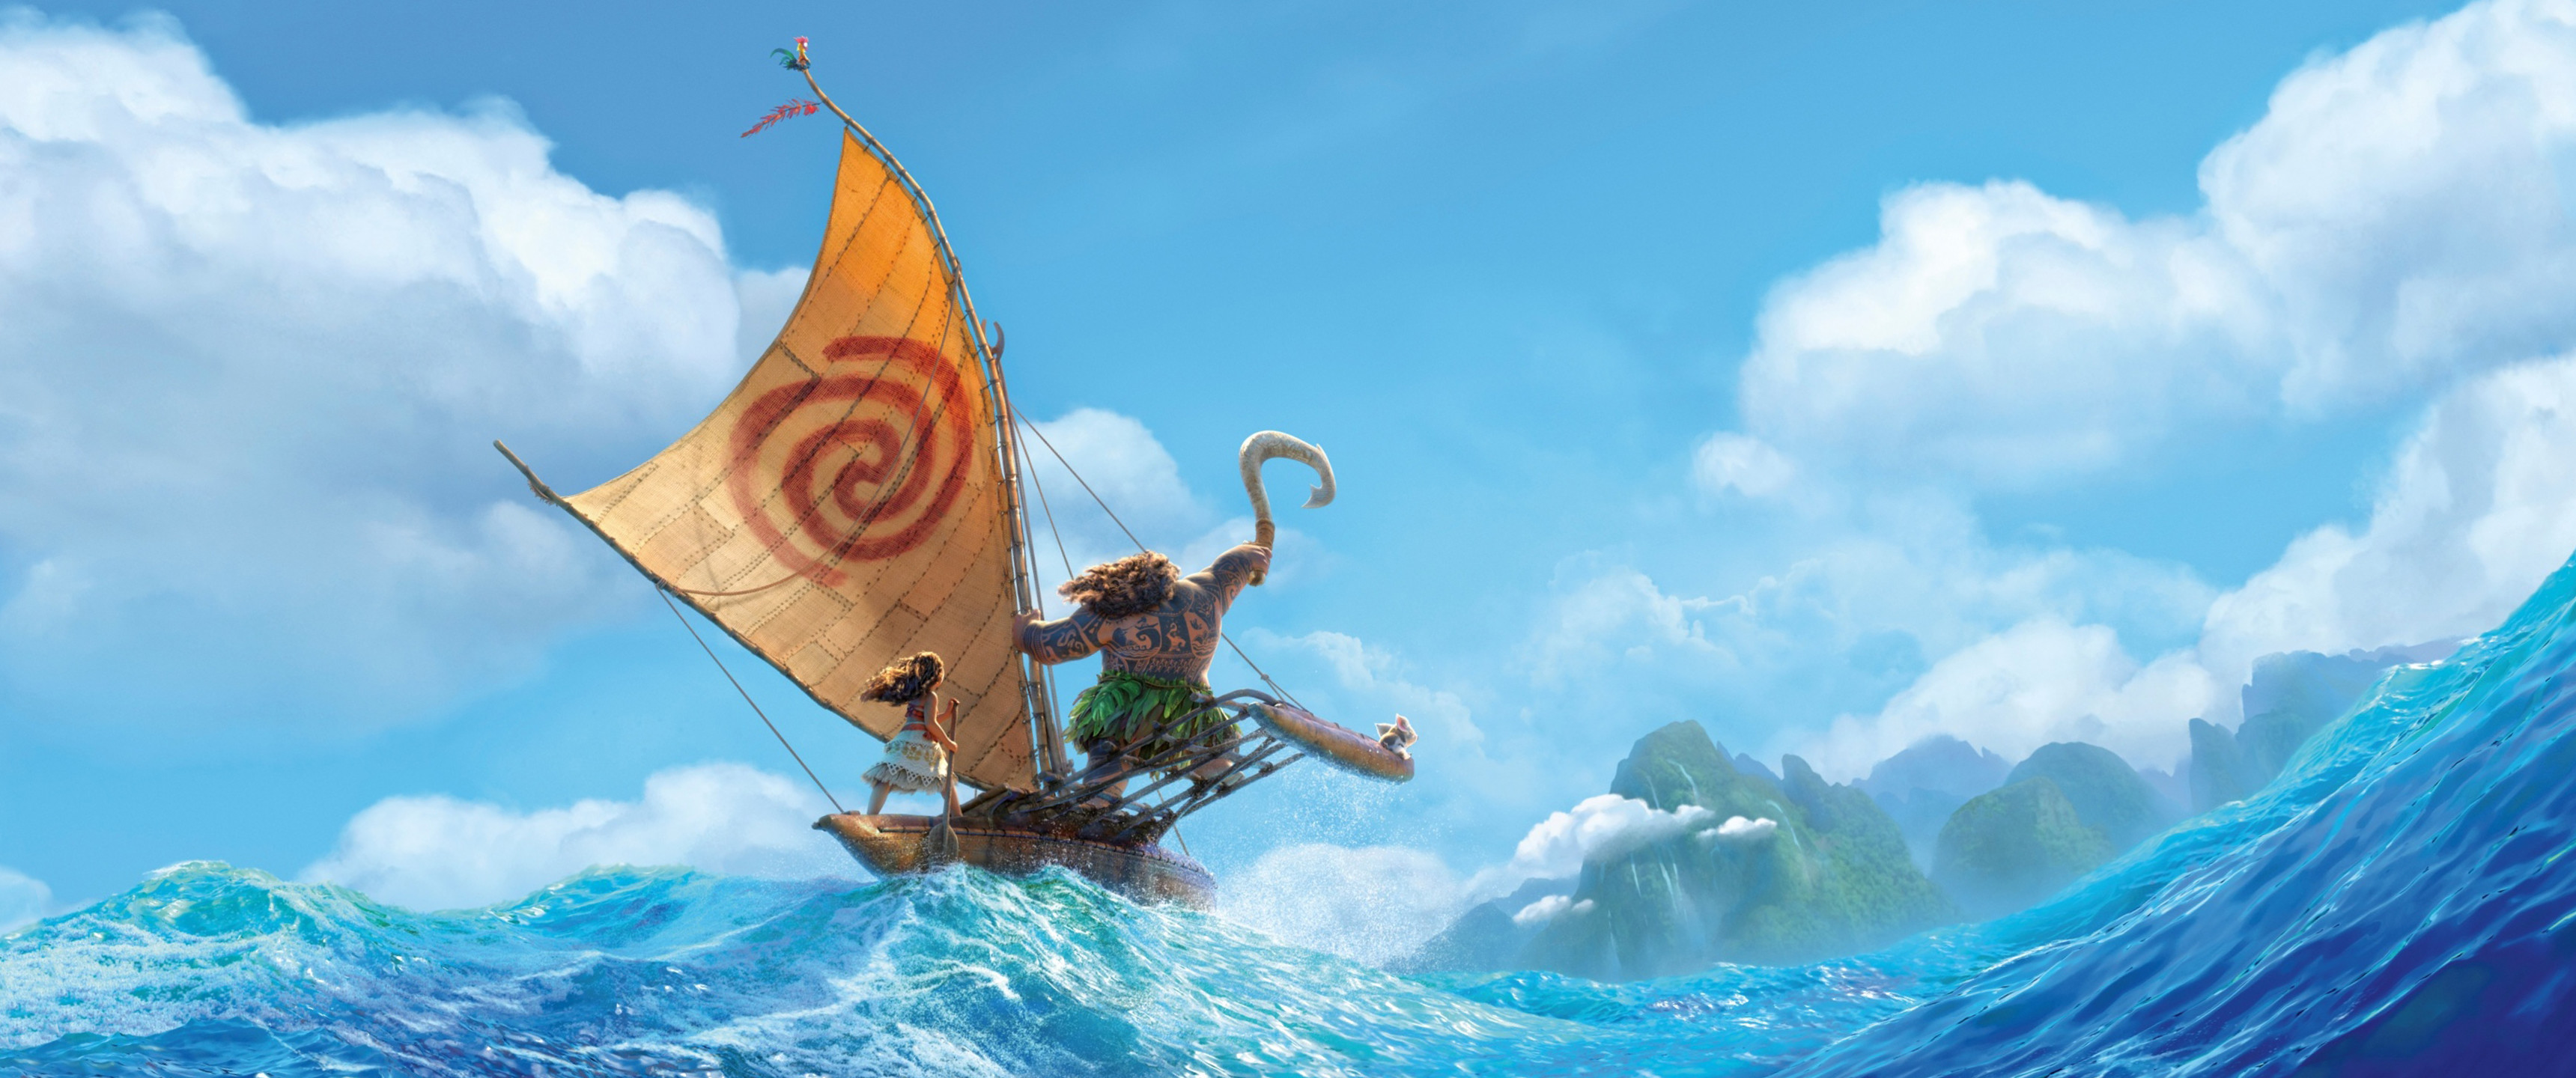 Disney Movies Hd Wallpapers: Moana Wallpapers (64+ Pictures